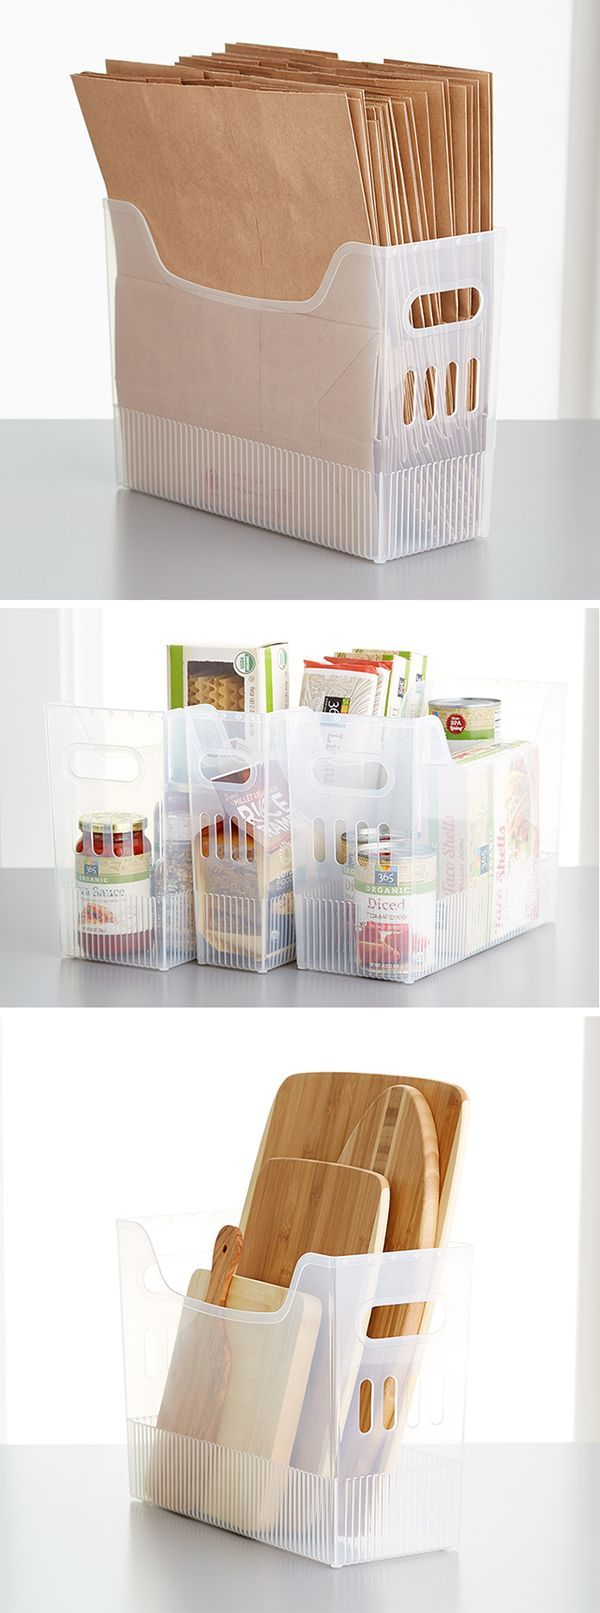 Our Multi-Purpose Bins can store magazines, pantry essentials, kitchen gadgets, crafts and more! Check it out on Container Stories.